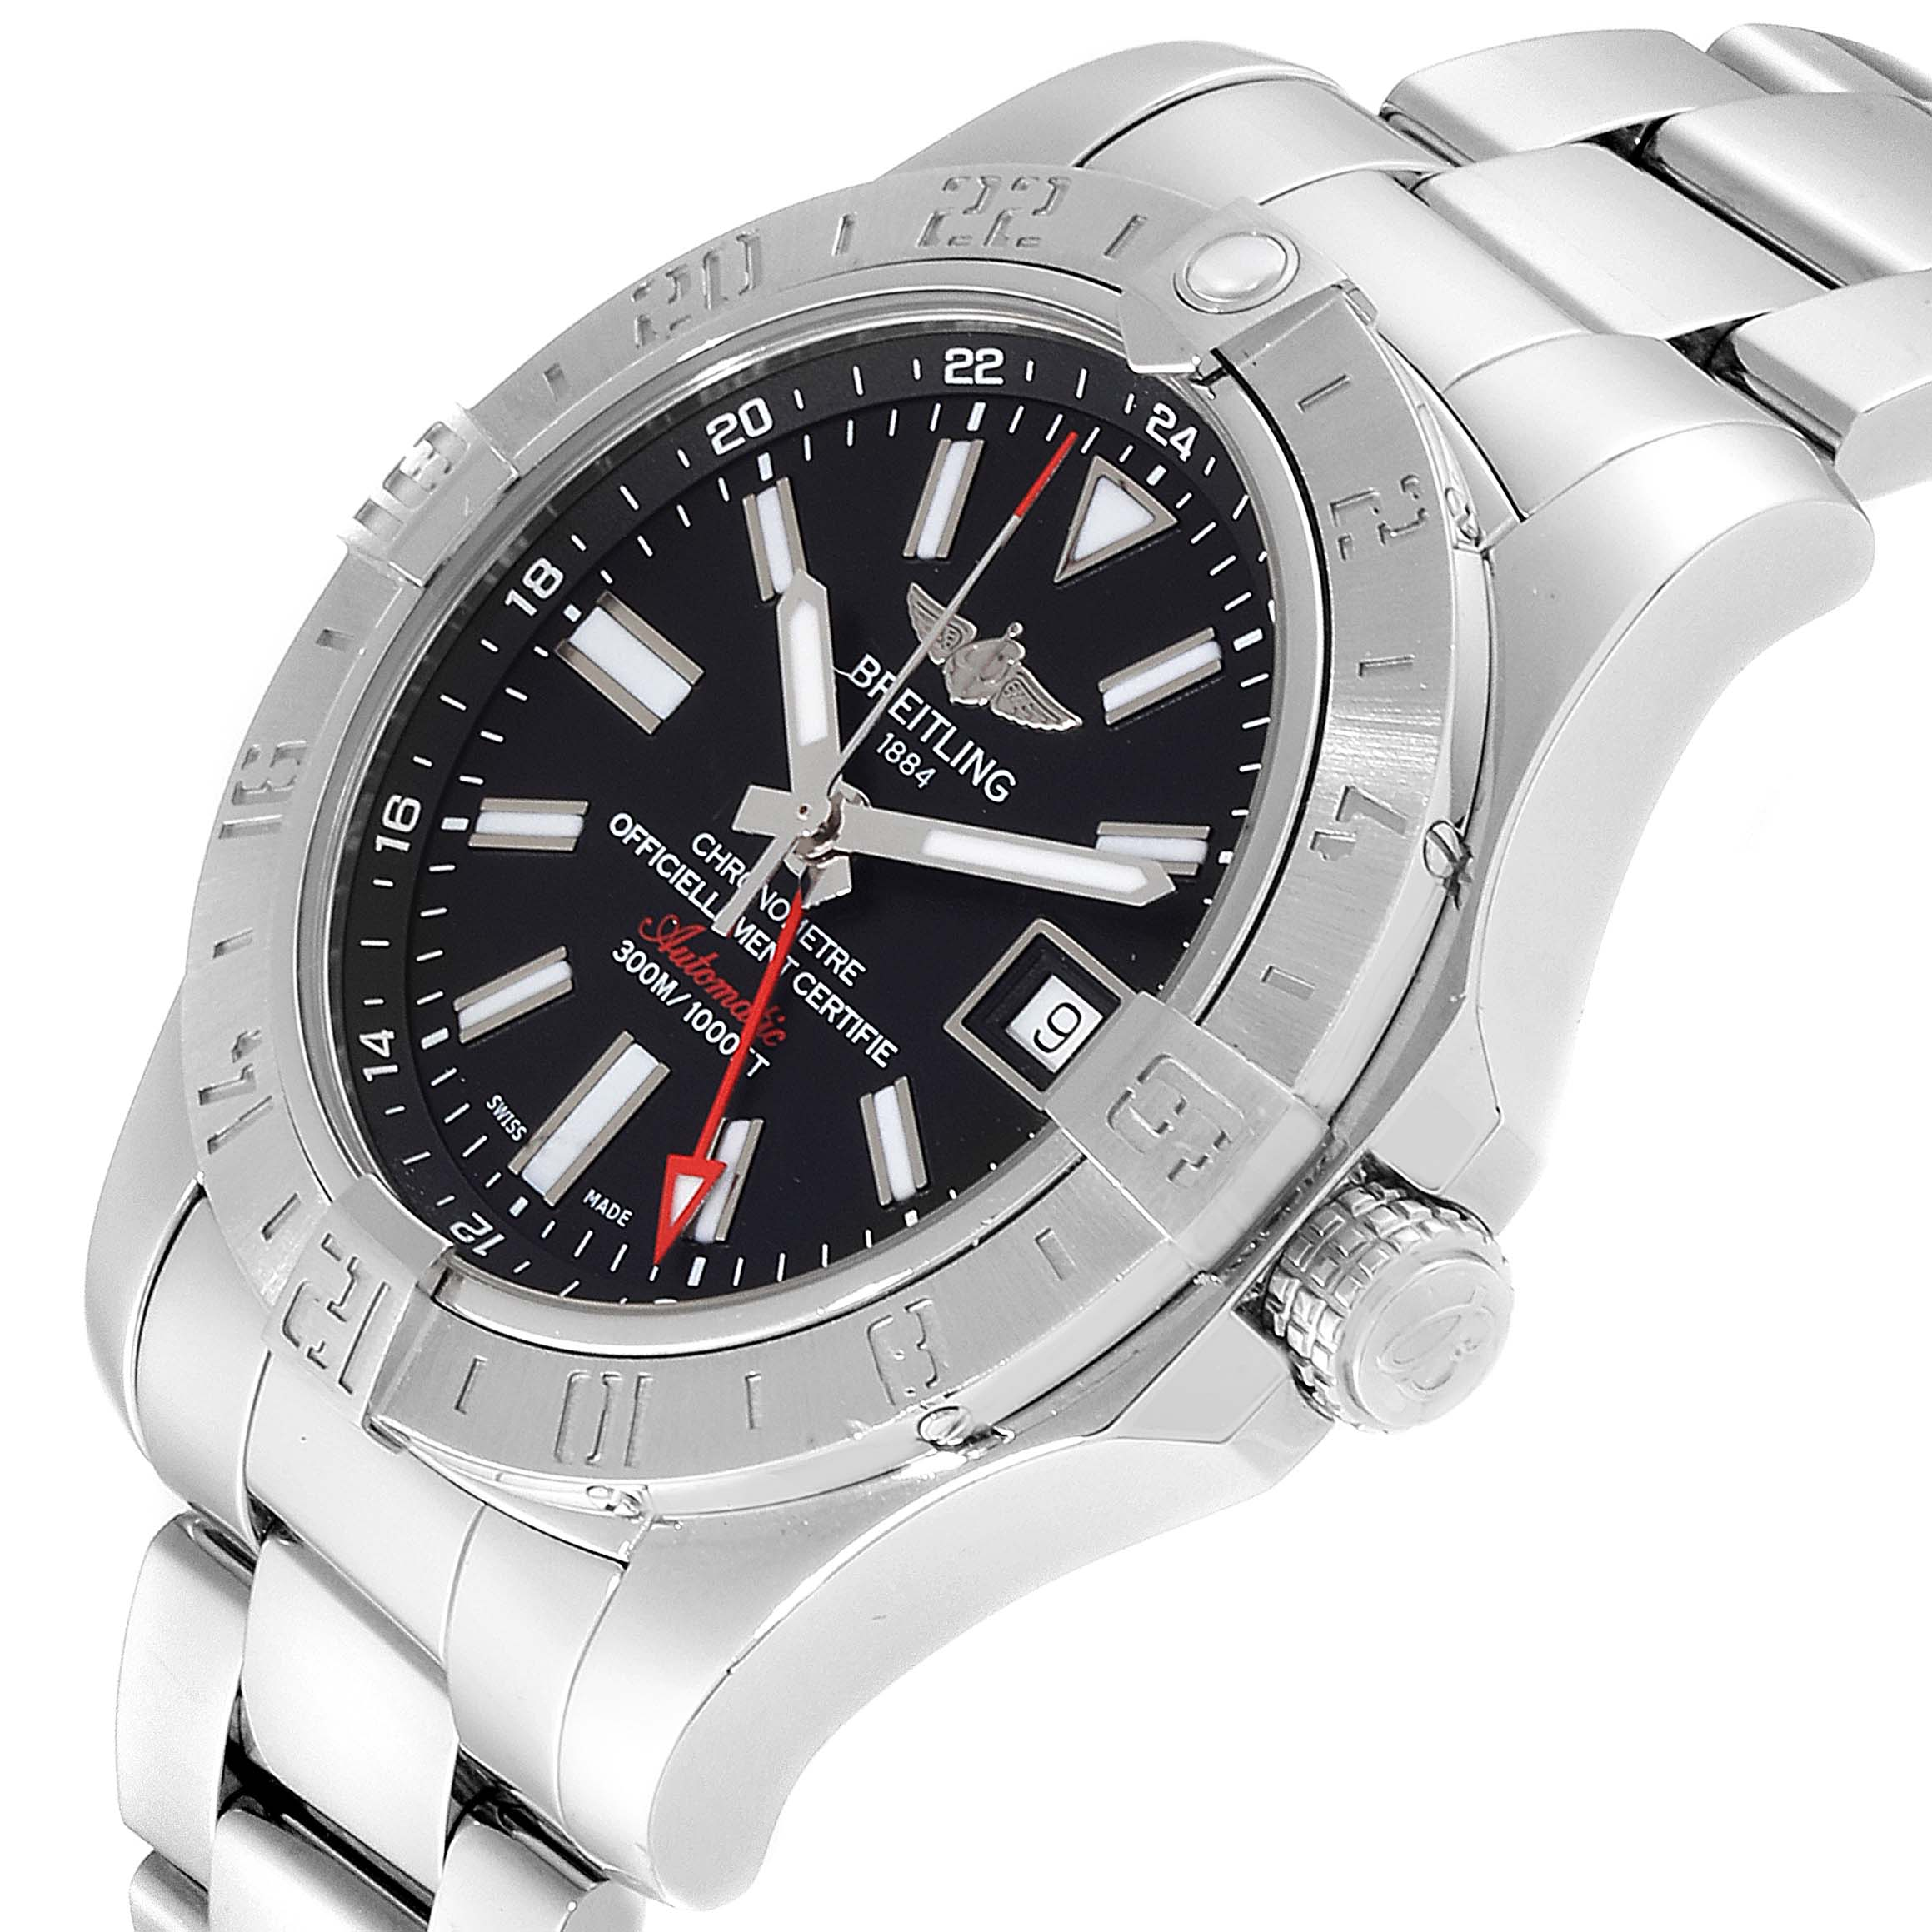 Breitling Aeromarine Avenger II GMT Black Dial Watch A32390 Box SwissWatchExpo